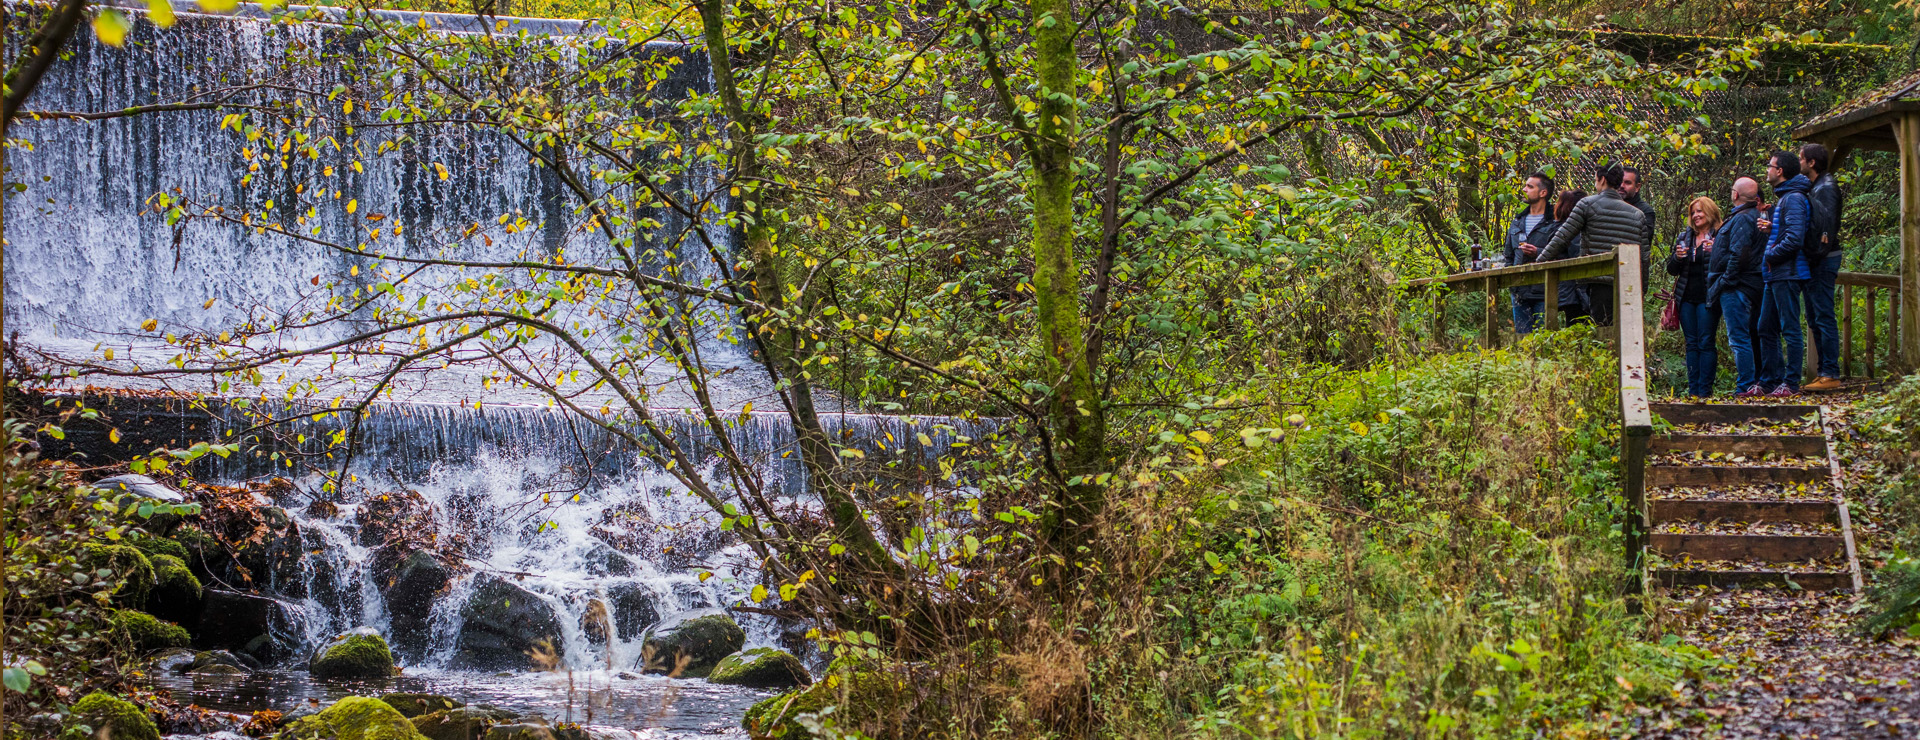 The Pitillie Burn - the water source for Aberfeldy Distillery